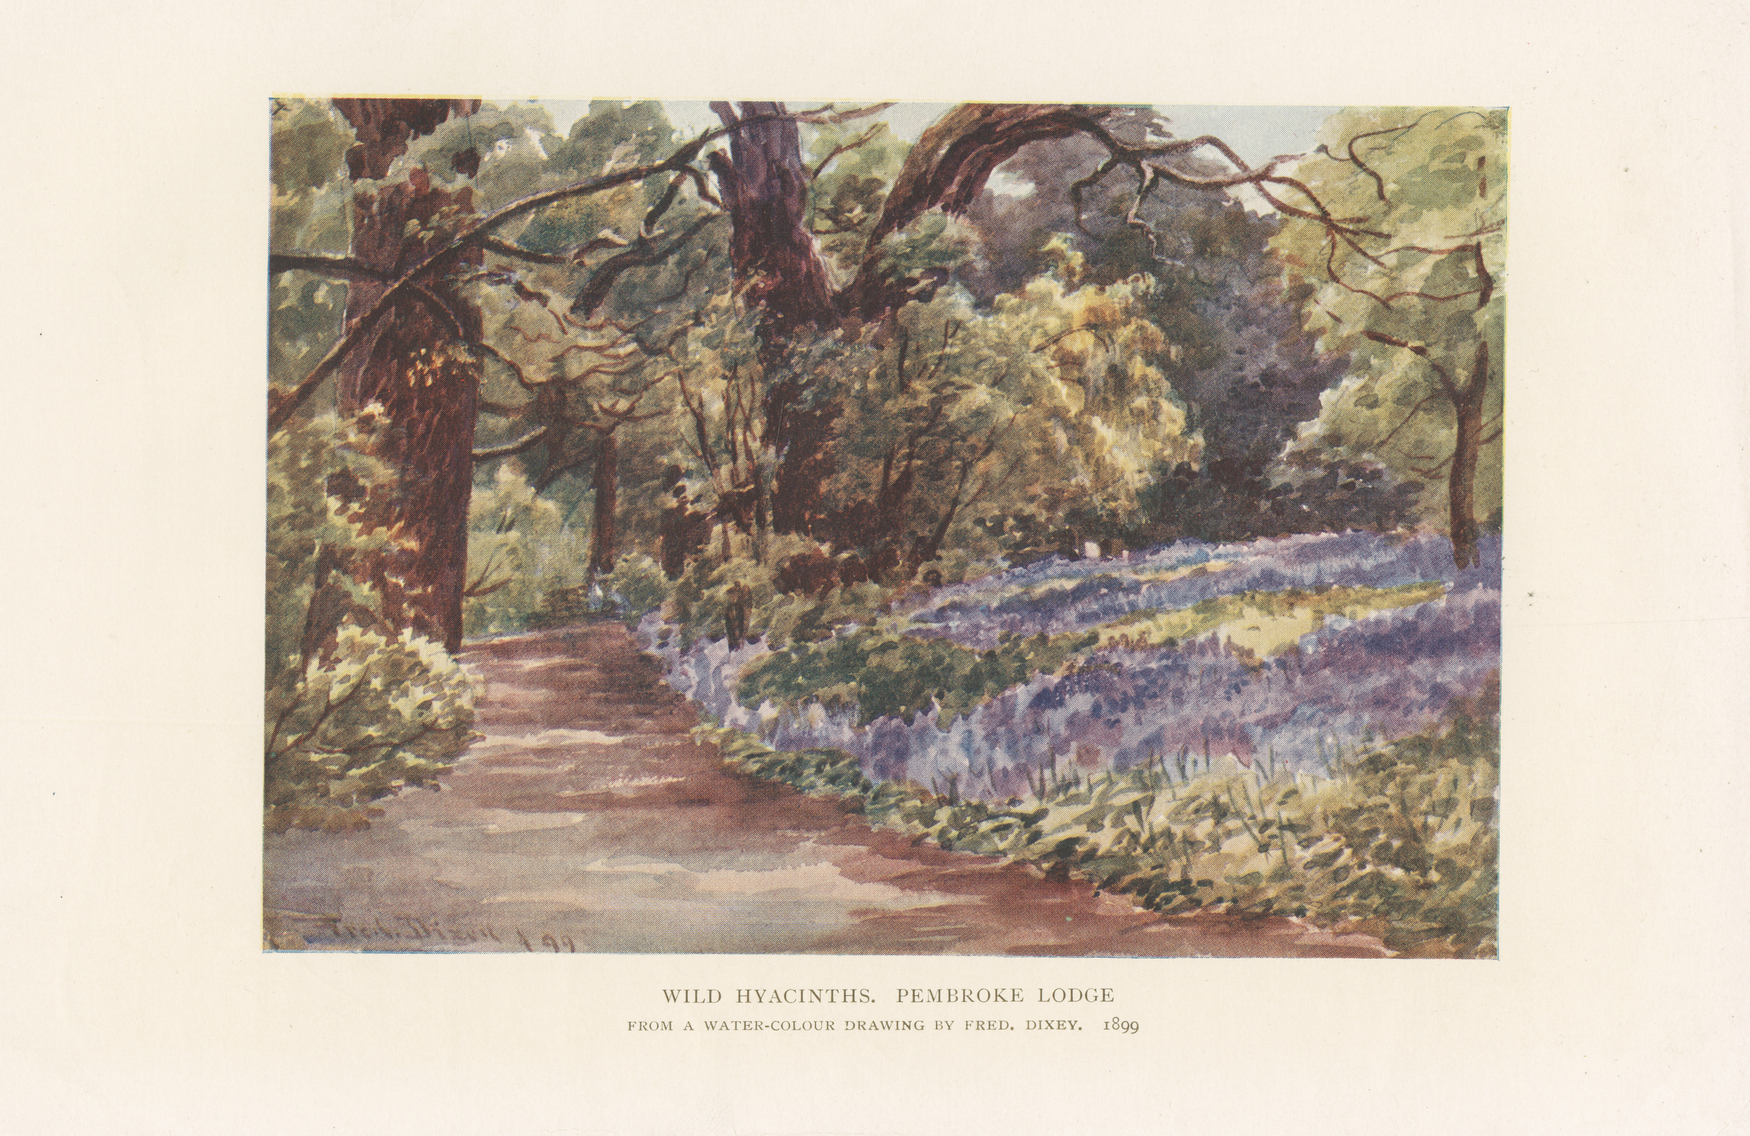 Painting of woodland path with bed of hyacinths at right.